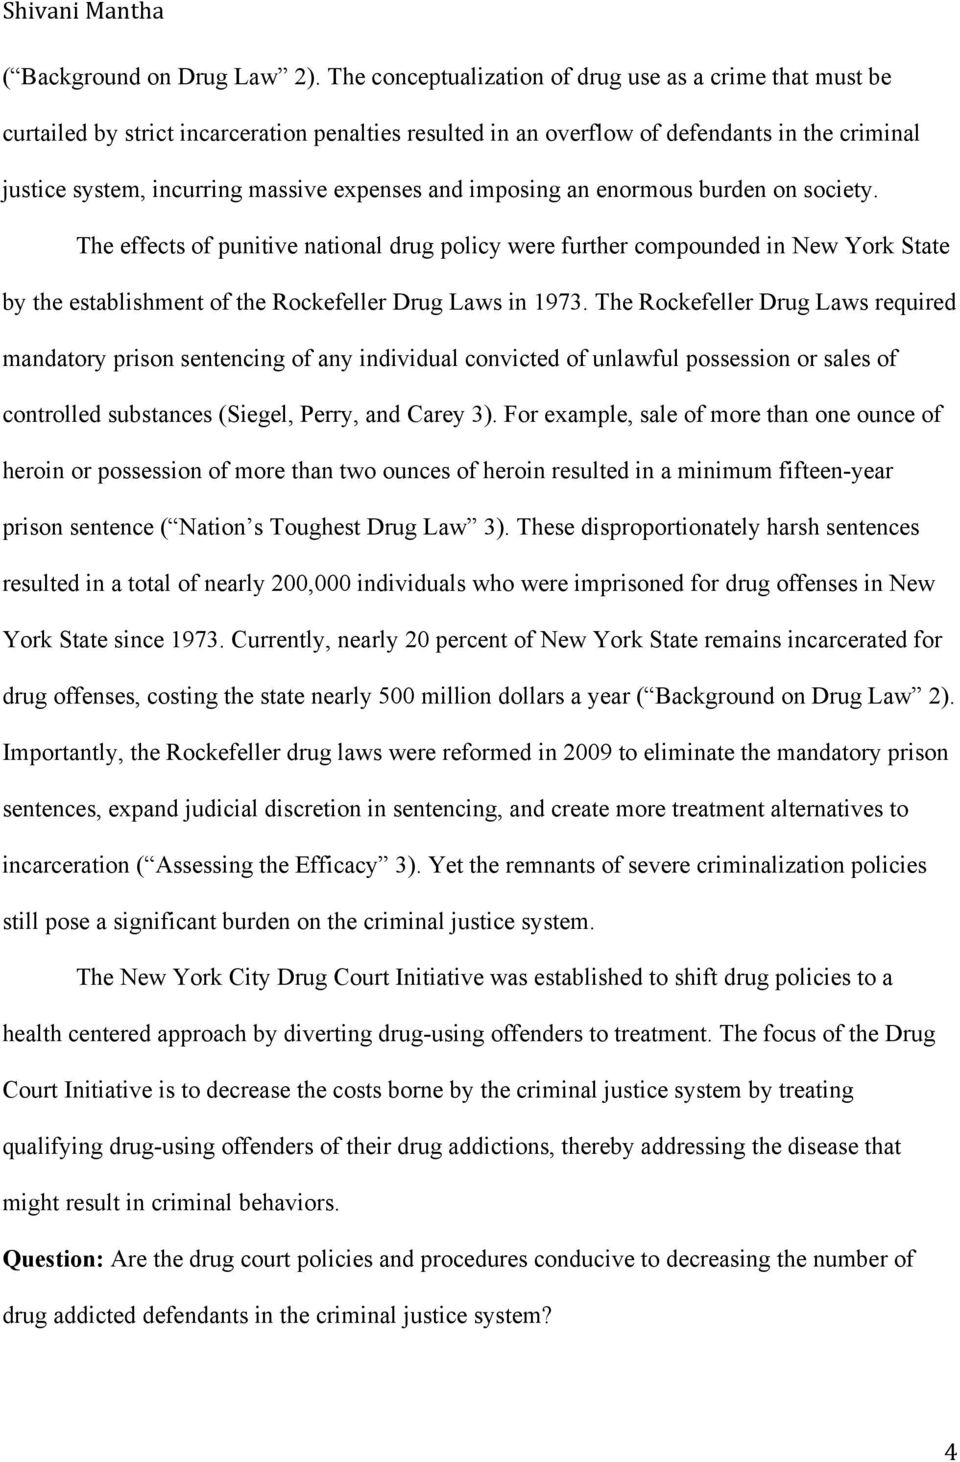 and imposing an enormous burden on society. The effects of punitive national drug policy were further compounded in New York State by the establishment of the Rockefeller Drug Laws in 1973.